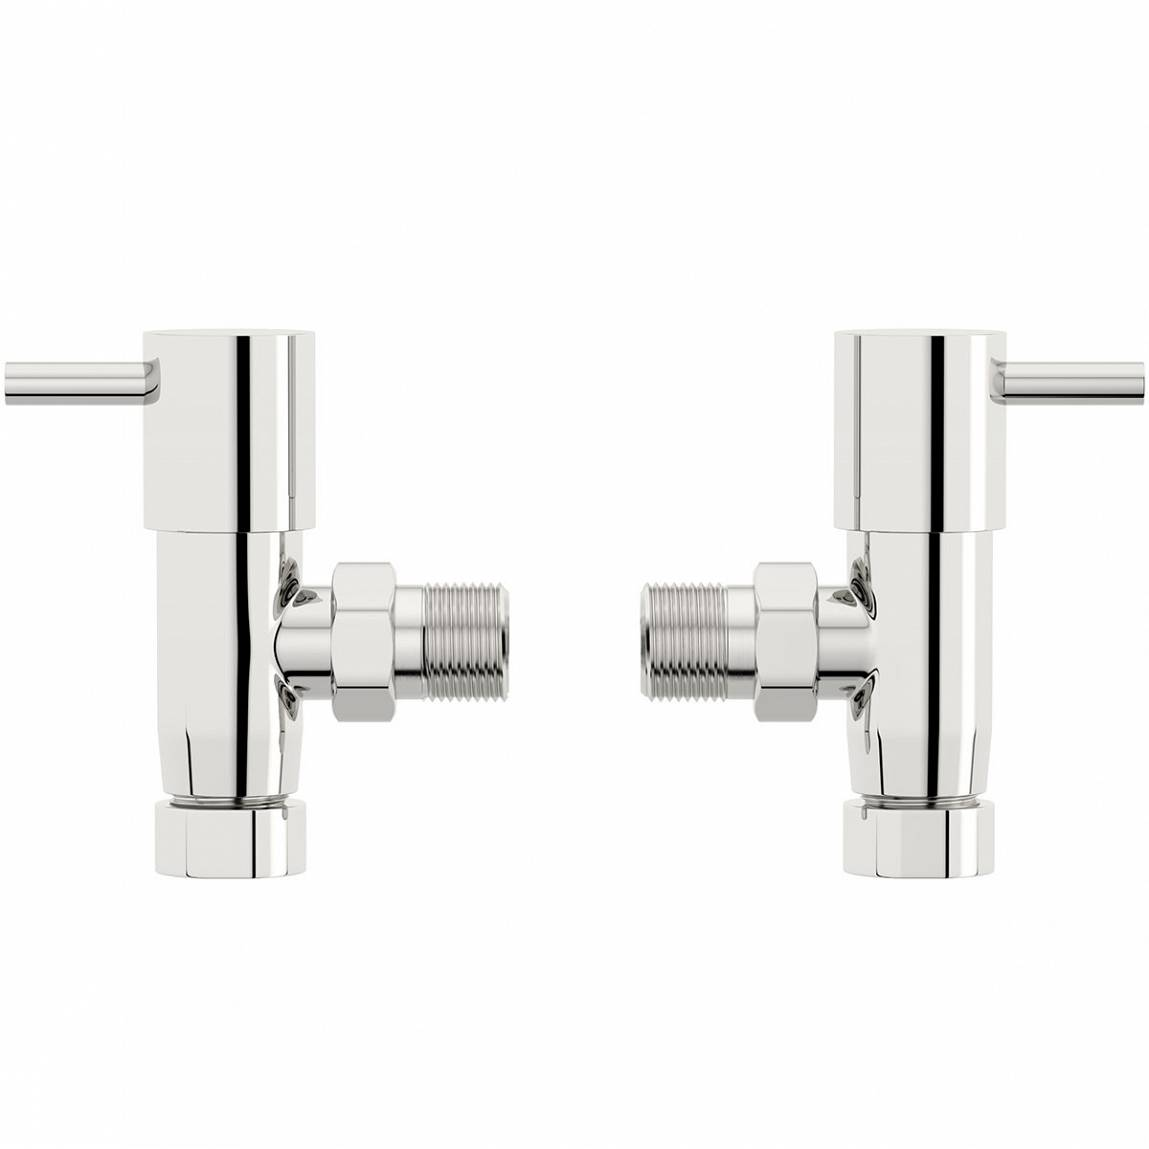 Image of Secta Angled Radiator Valves